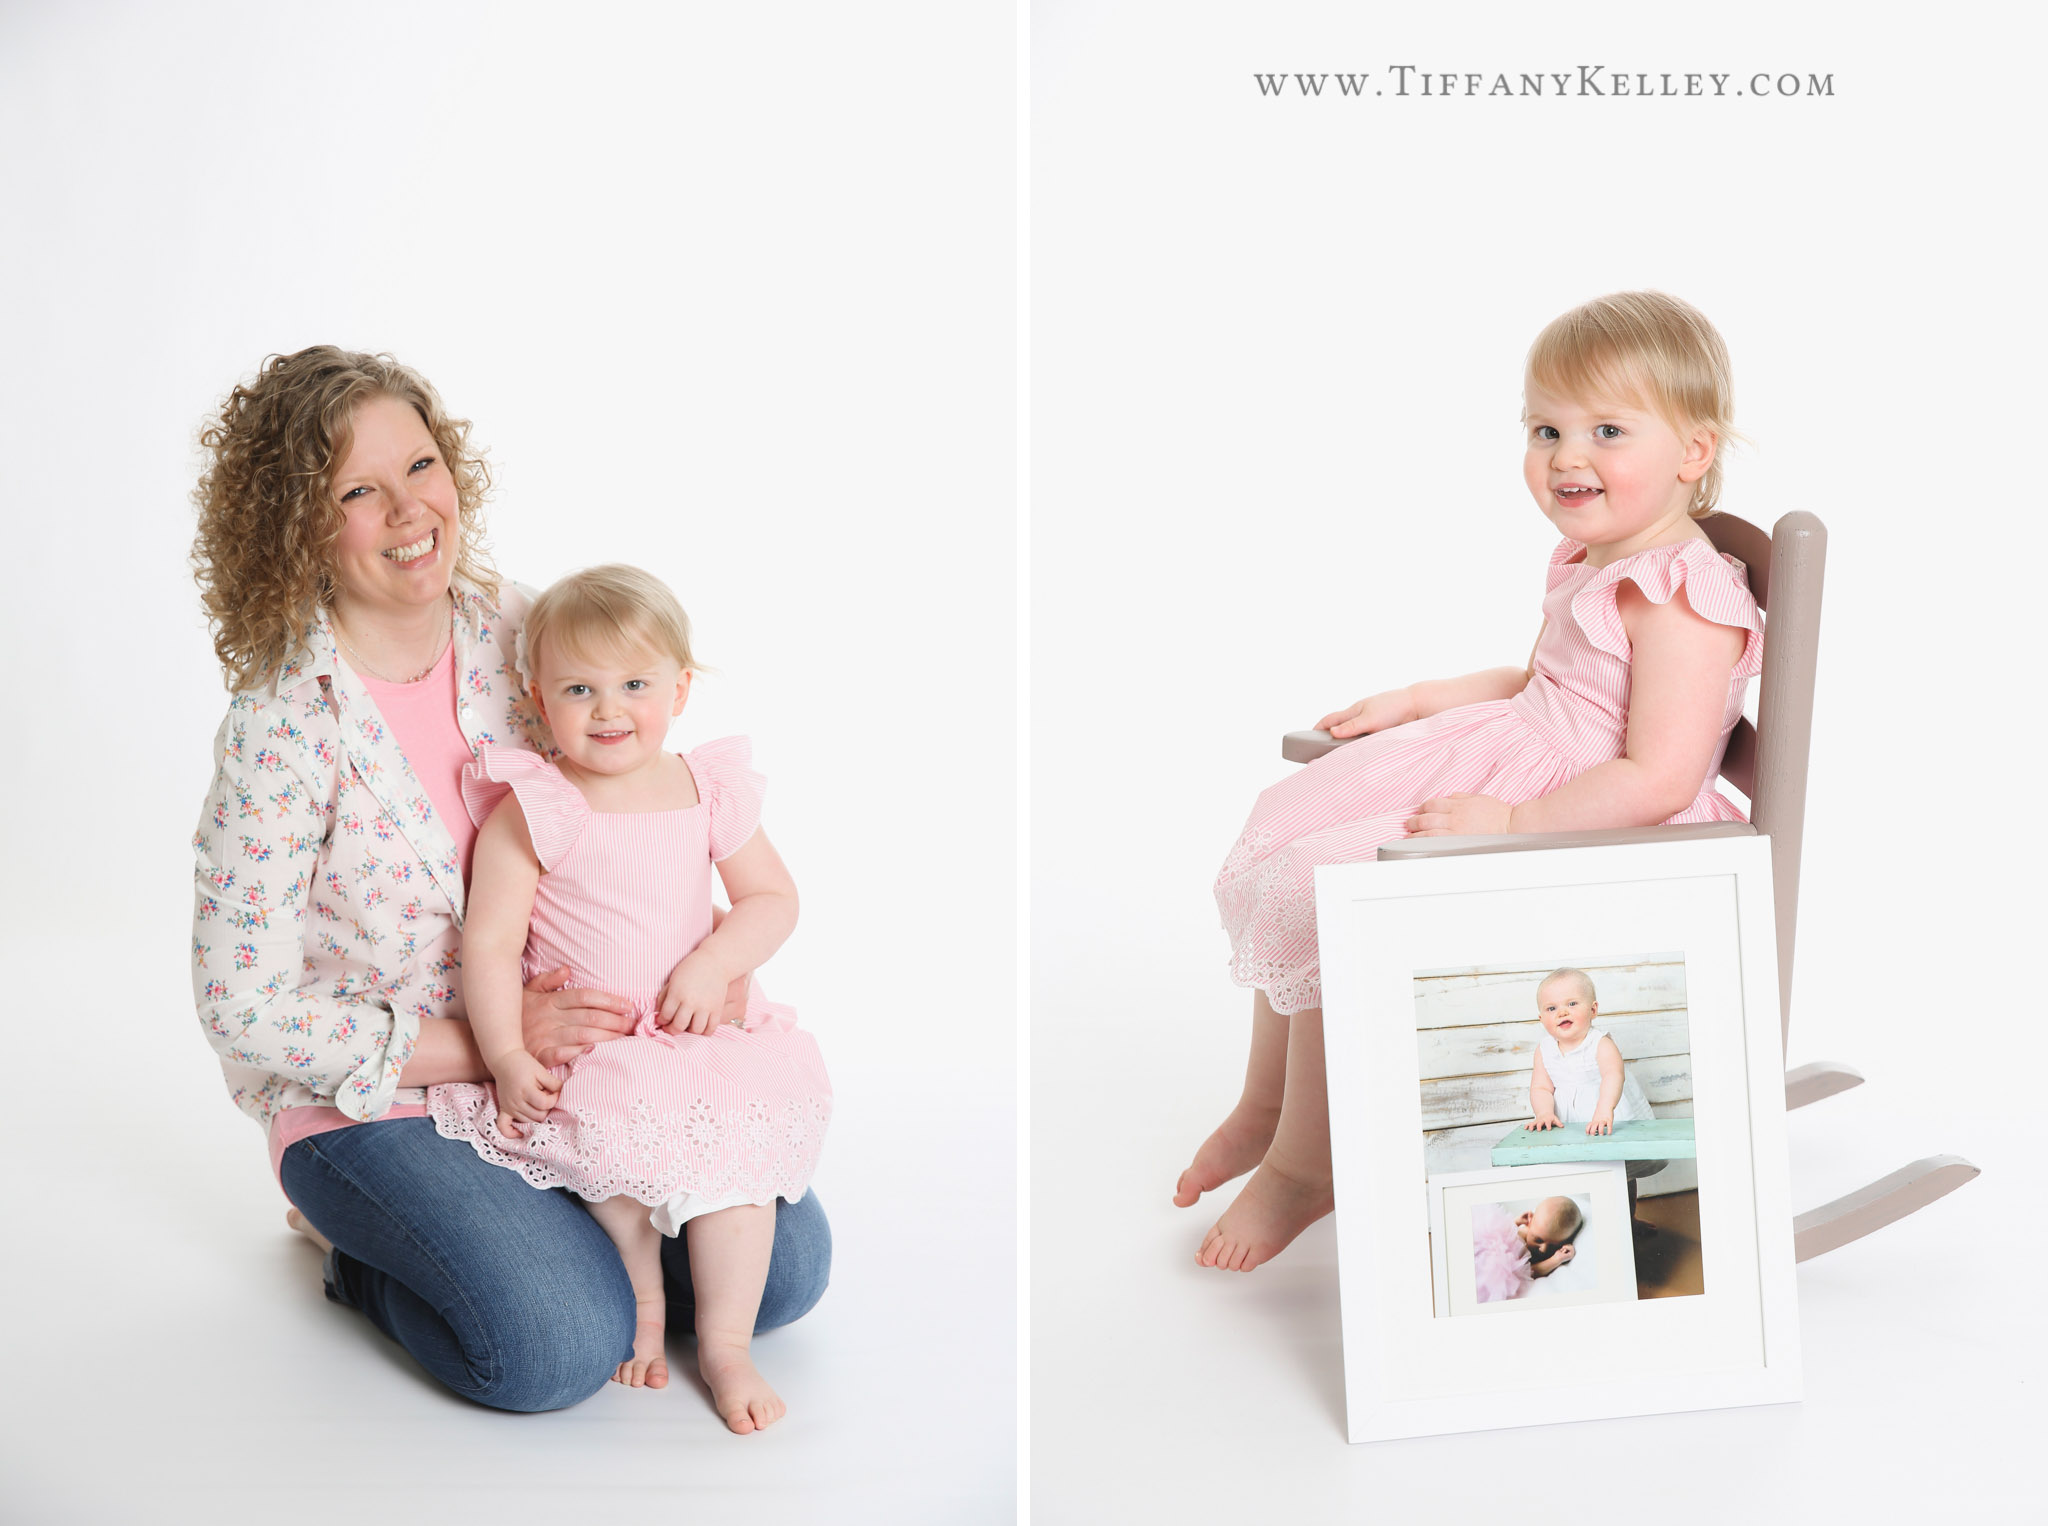 Ostaszewski Branson Springfield MO Family Photographer - Tiffany Kelley Photography